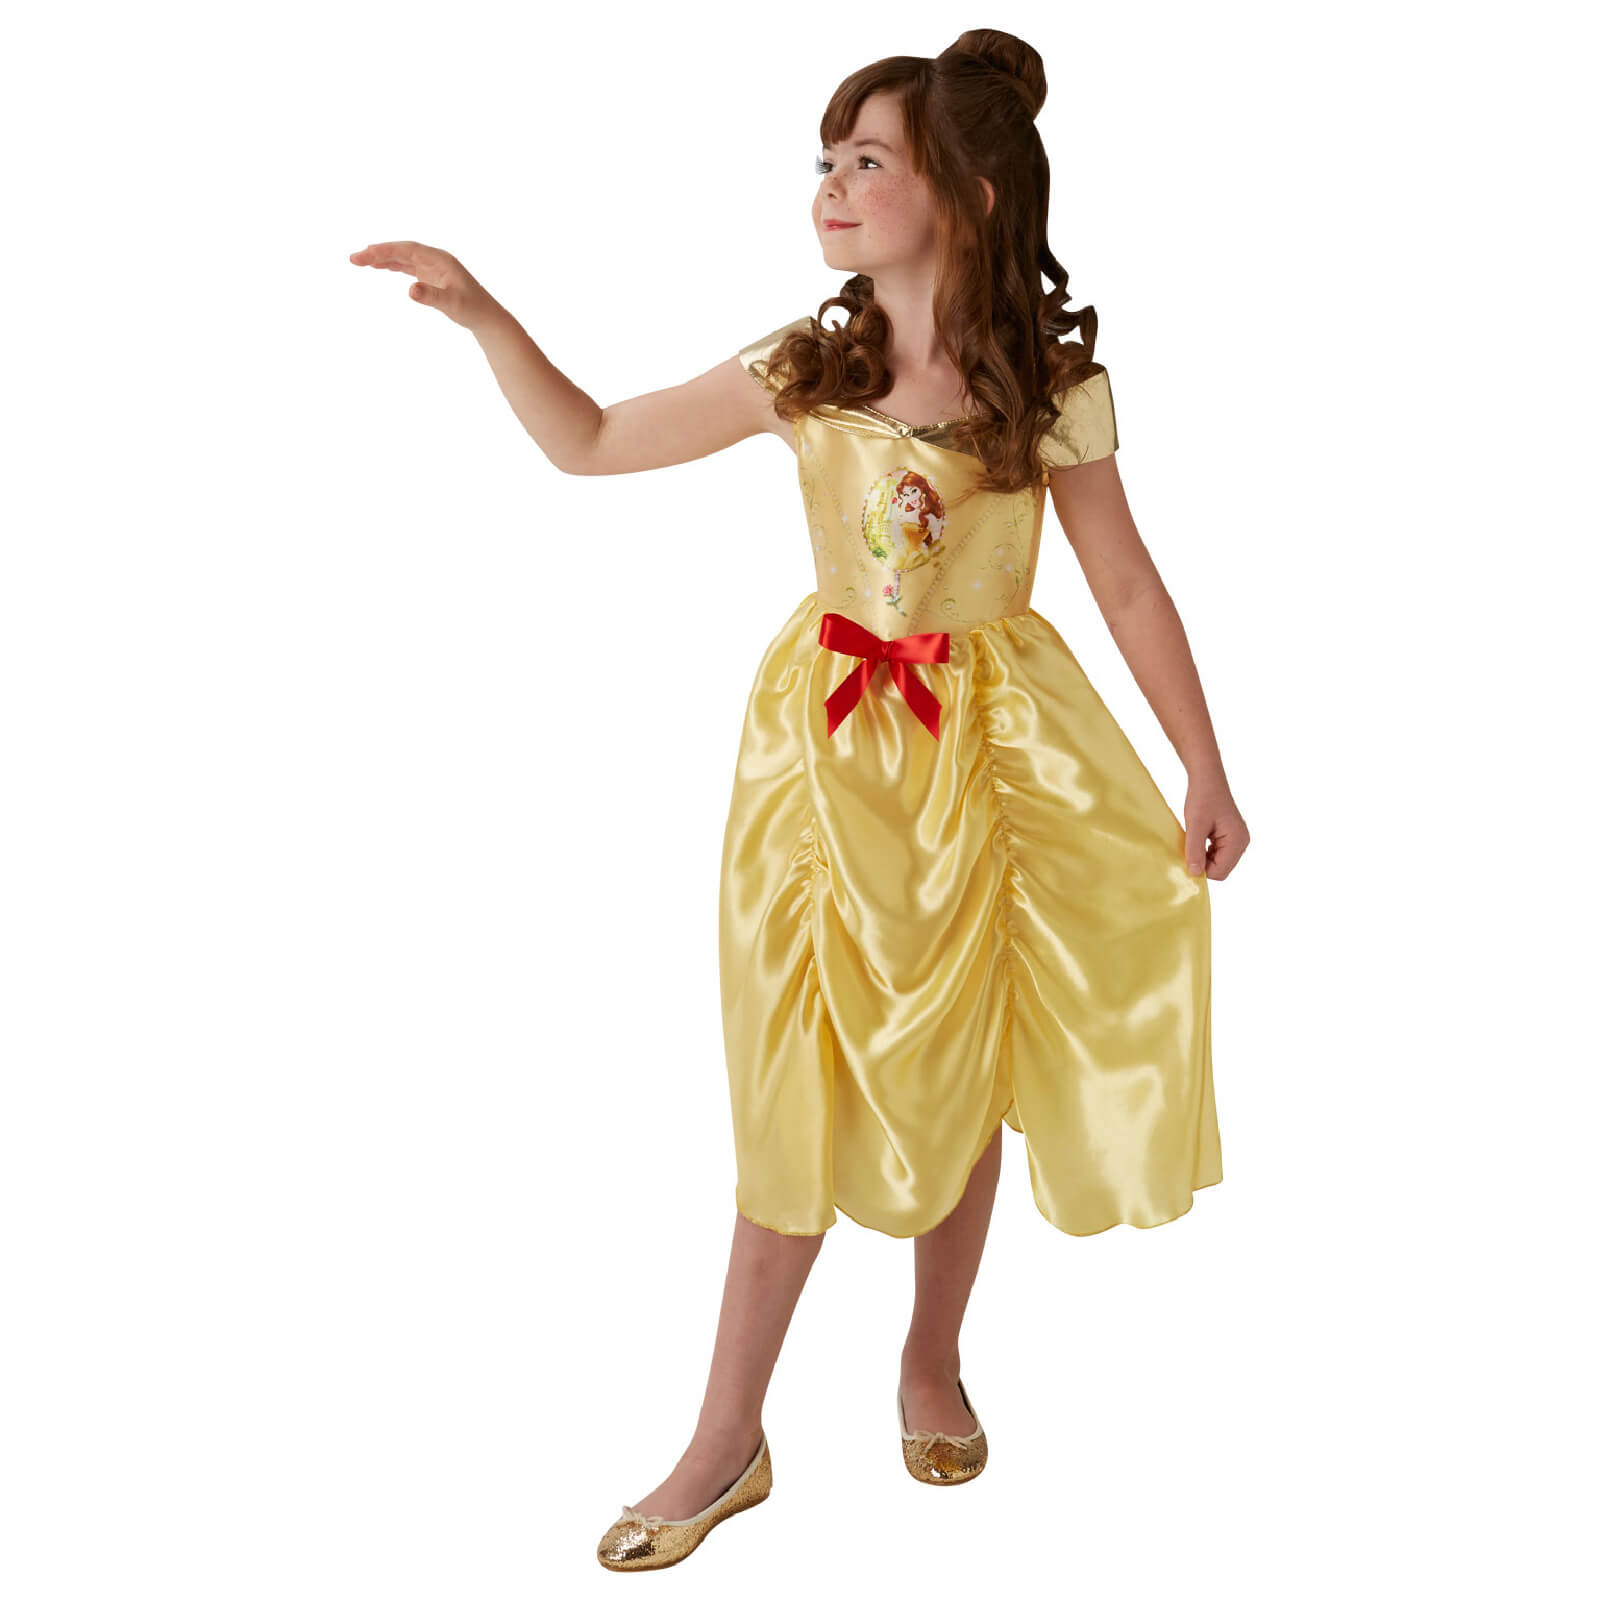 d20630fc796 Disney Girls' Beauty and the Beast Belle Fancy Dress Costume